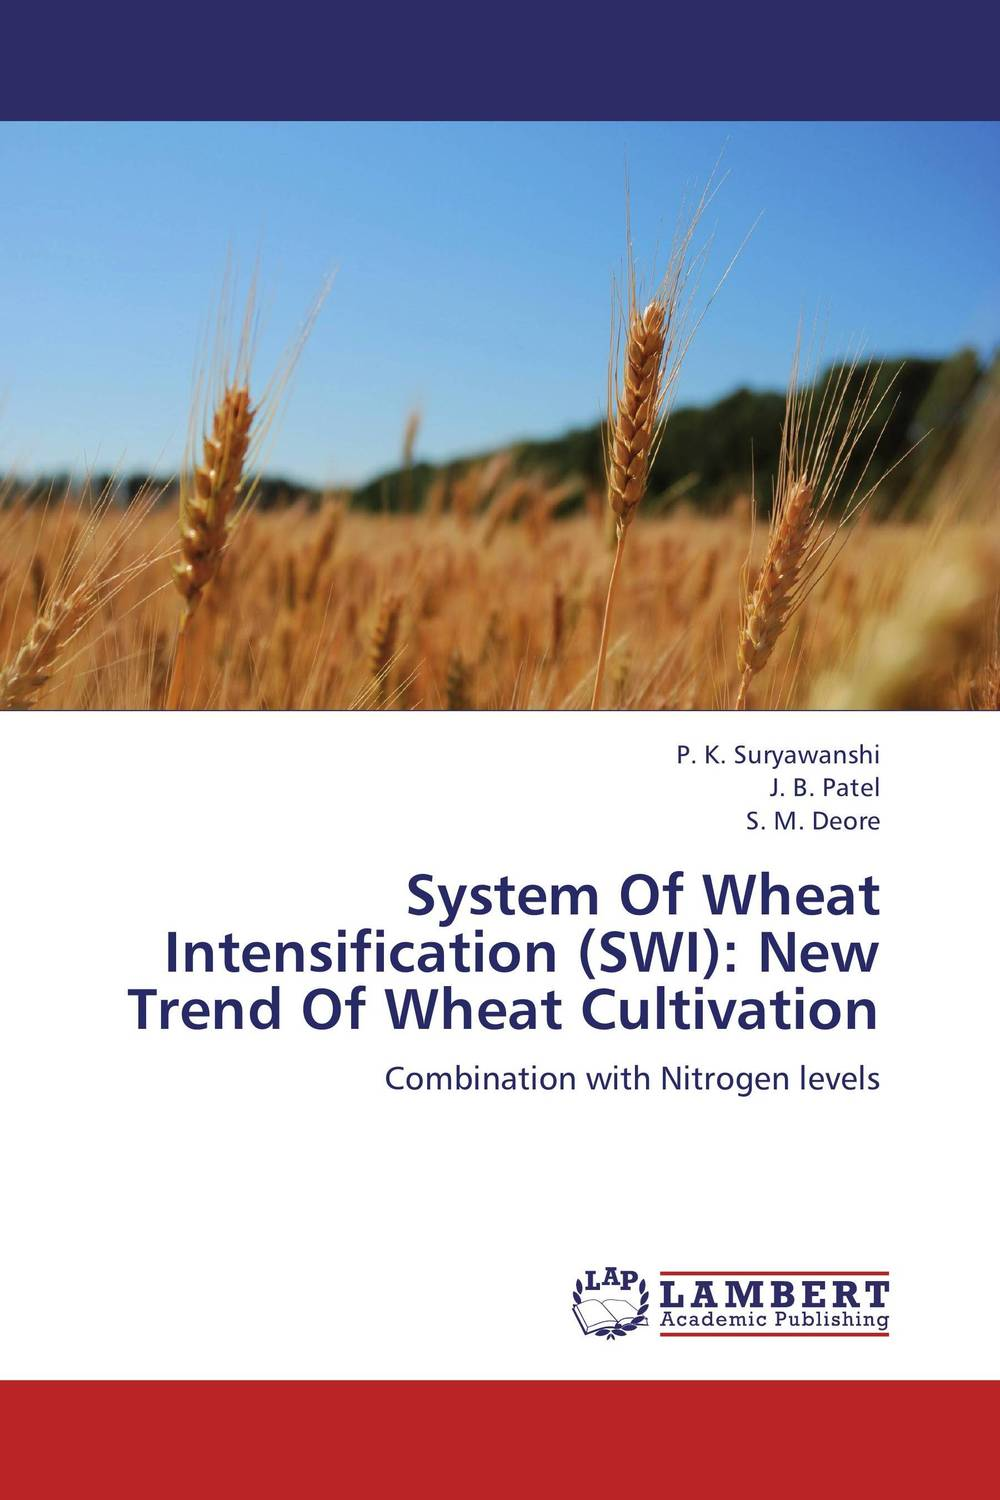 System Of Wheat Intensification (SWI): New Trend Of Wheat Cultivation purnima sareen sundeep kumar and rakesh singh molecular and pathological characterization of slow rusting in wheat